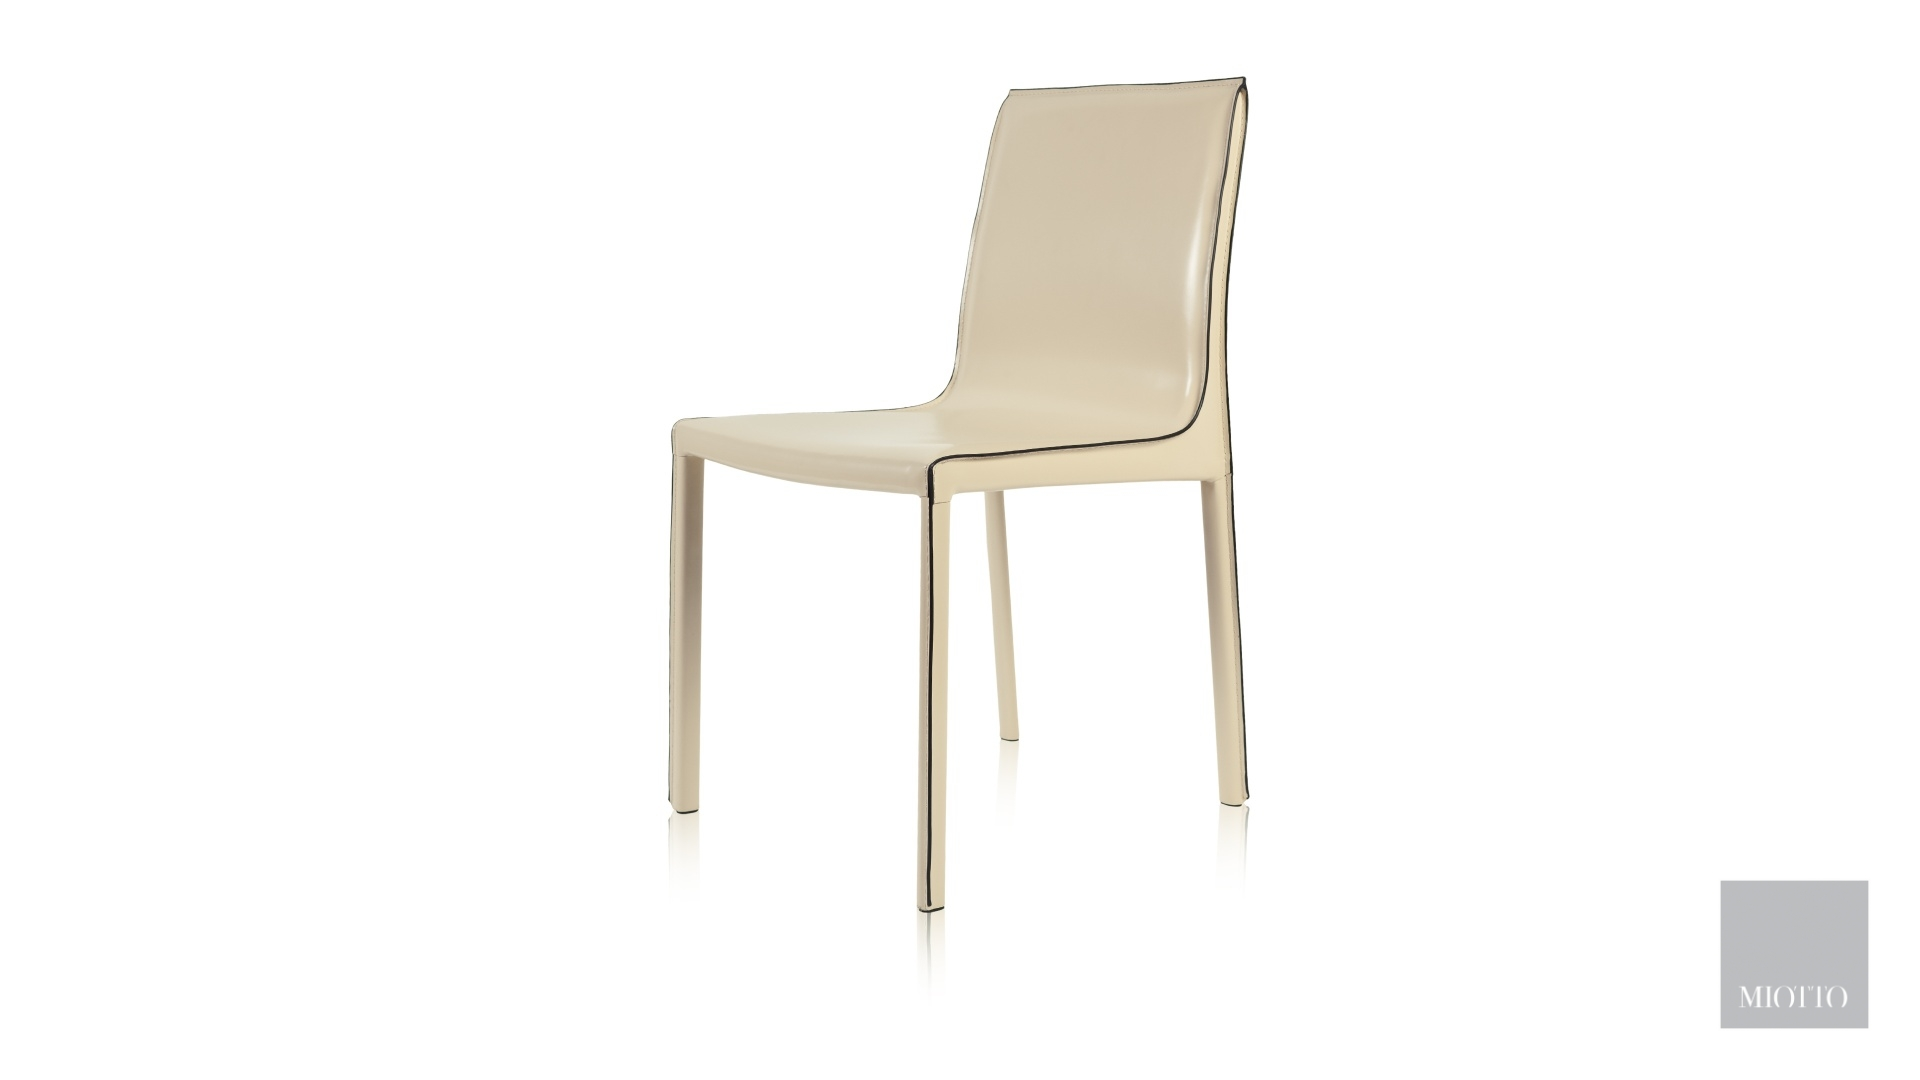 miotto_Ardini dining chair beige miotto furniture t